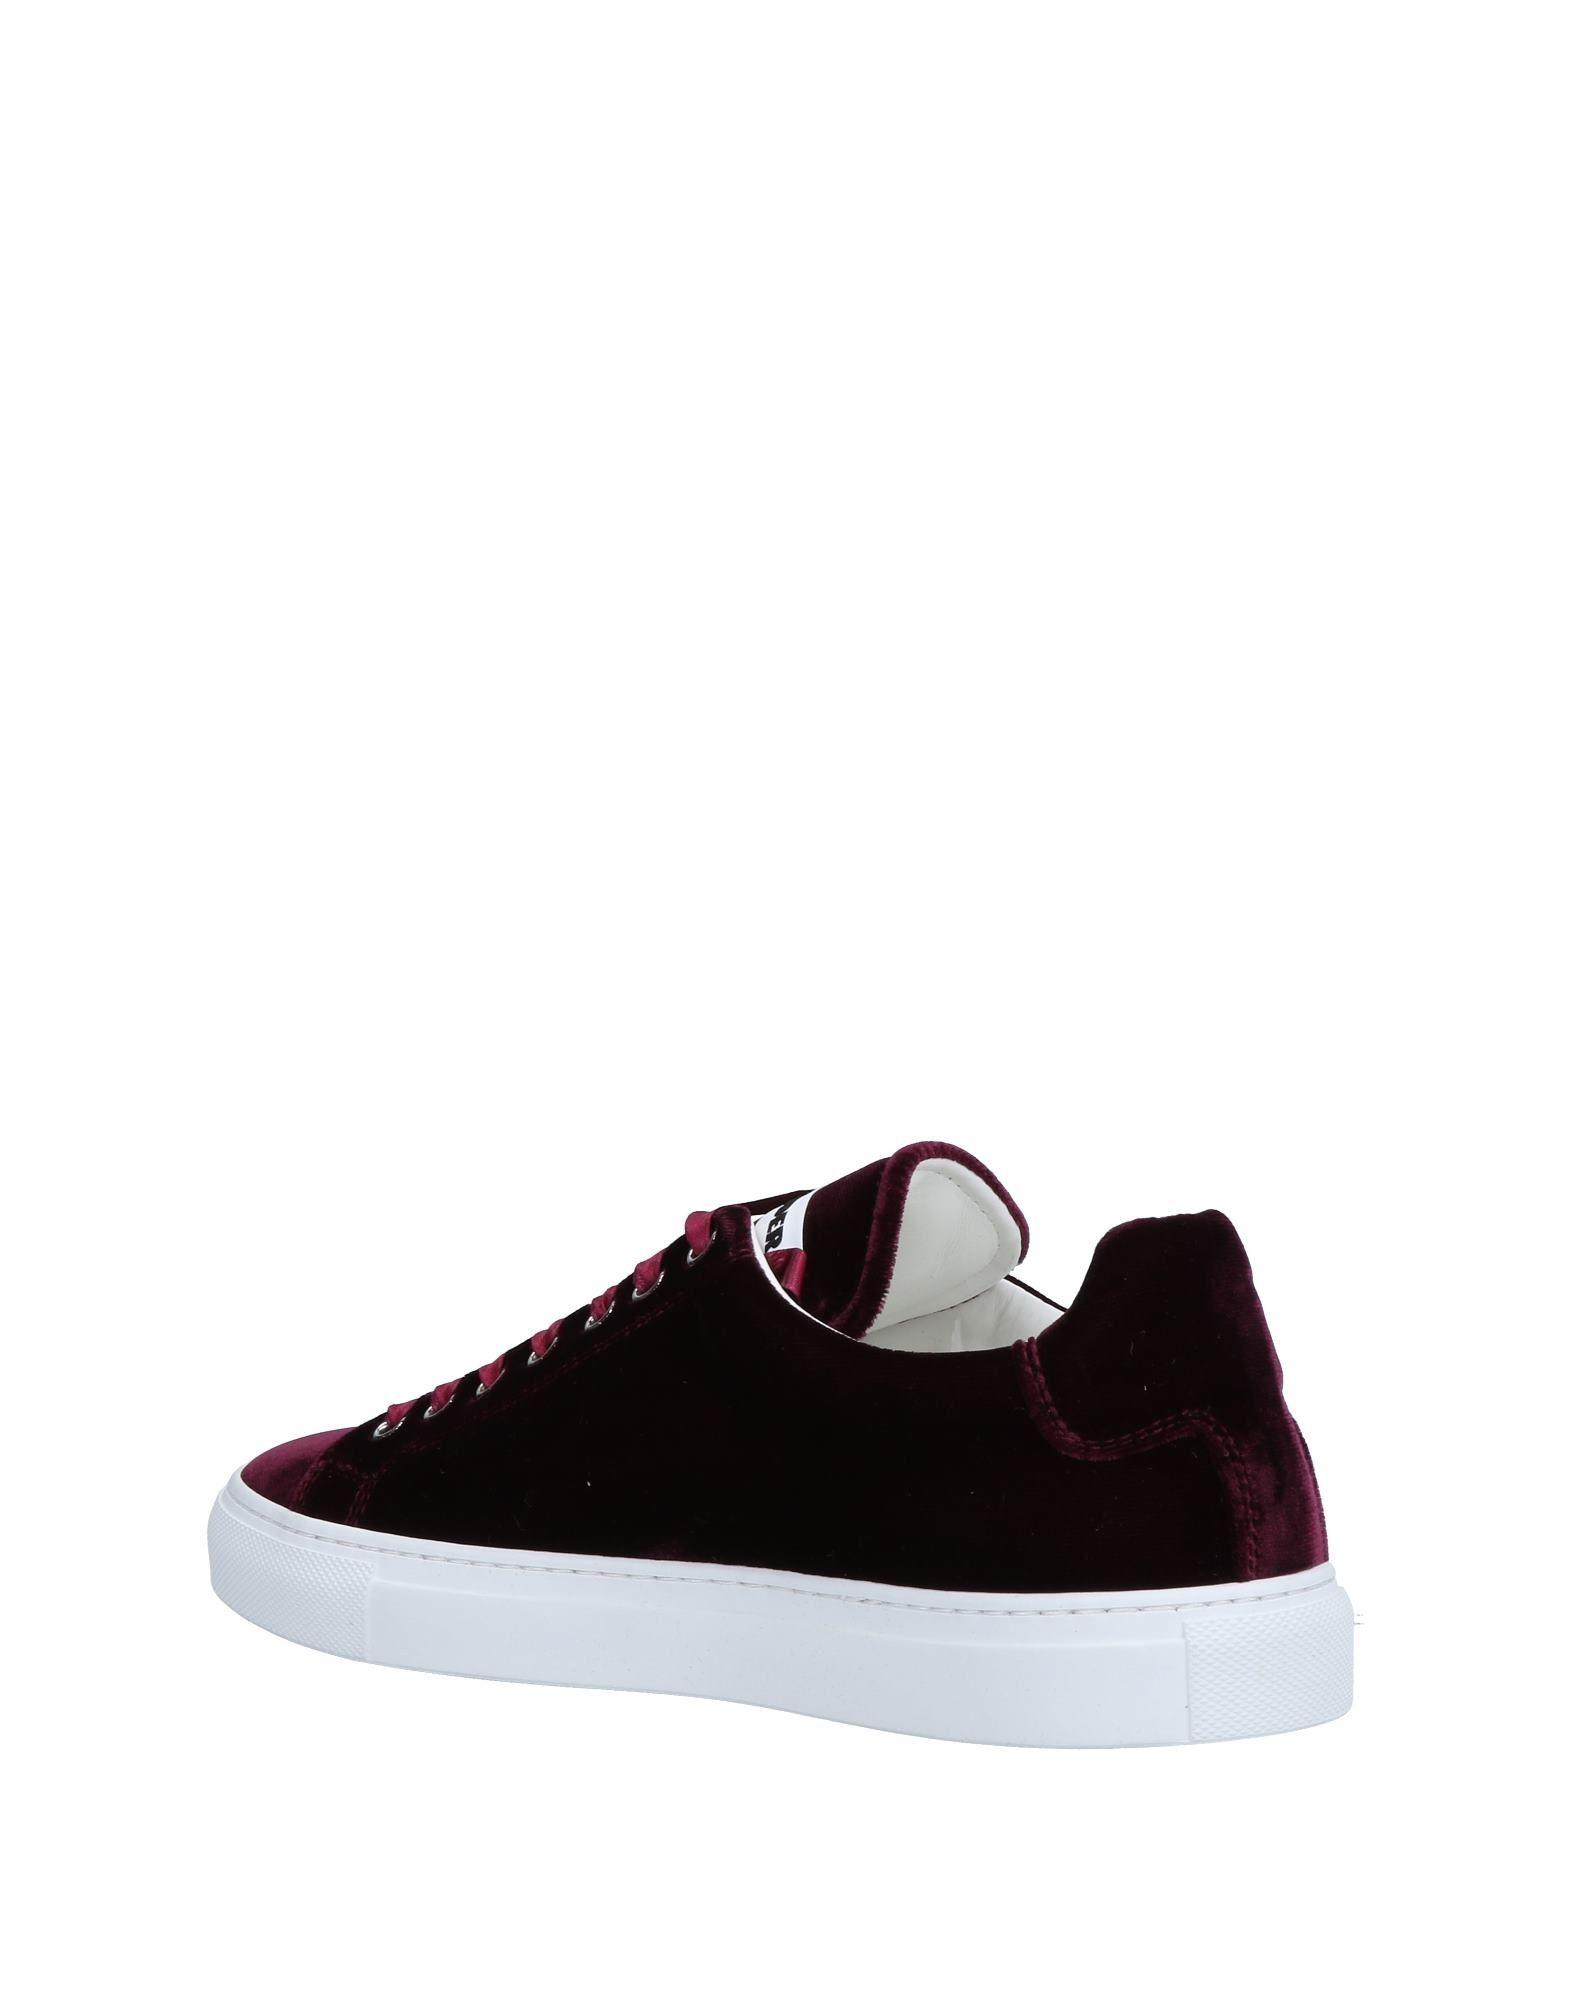 Jil Sander Satin Low-tops & Sneakers in Deep Purple (Purple)